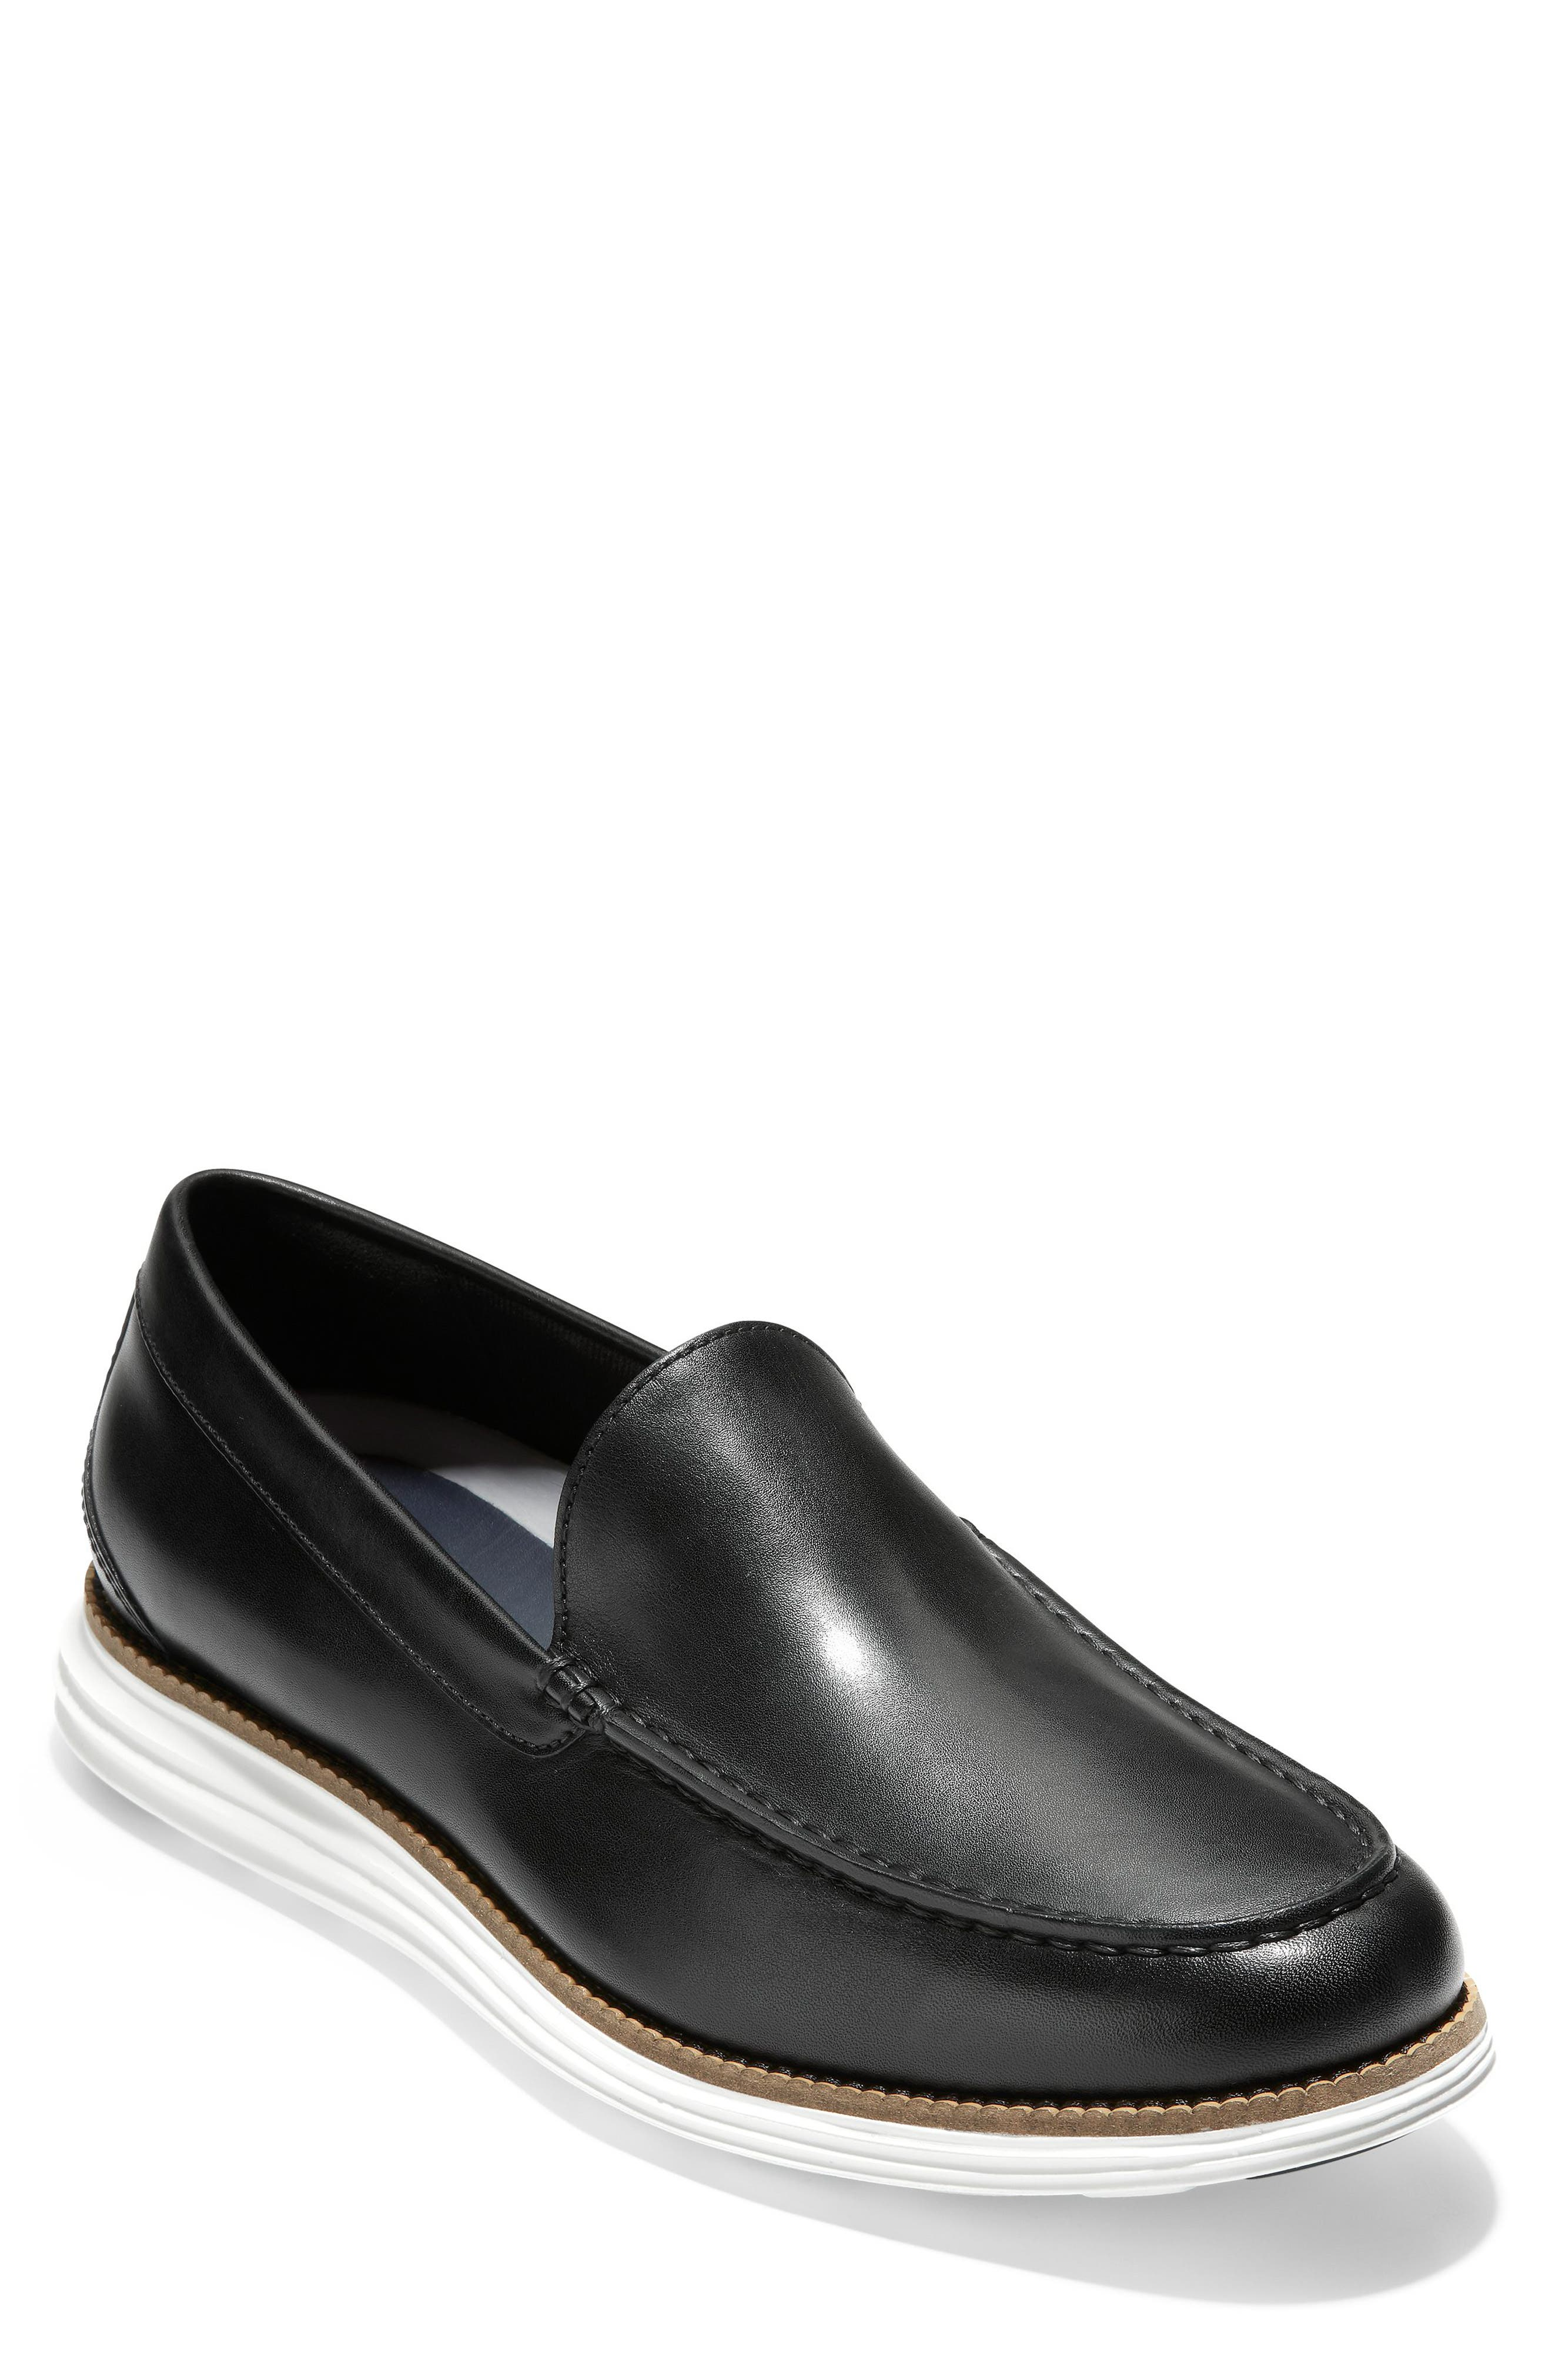 COLE HAAN Original Grand Loafer, Main, color, BLACK/ OPTIC WHITE LEATHER